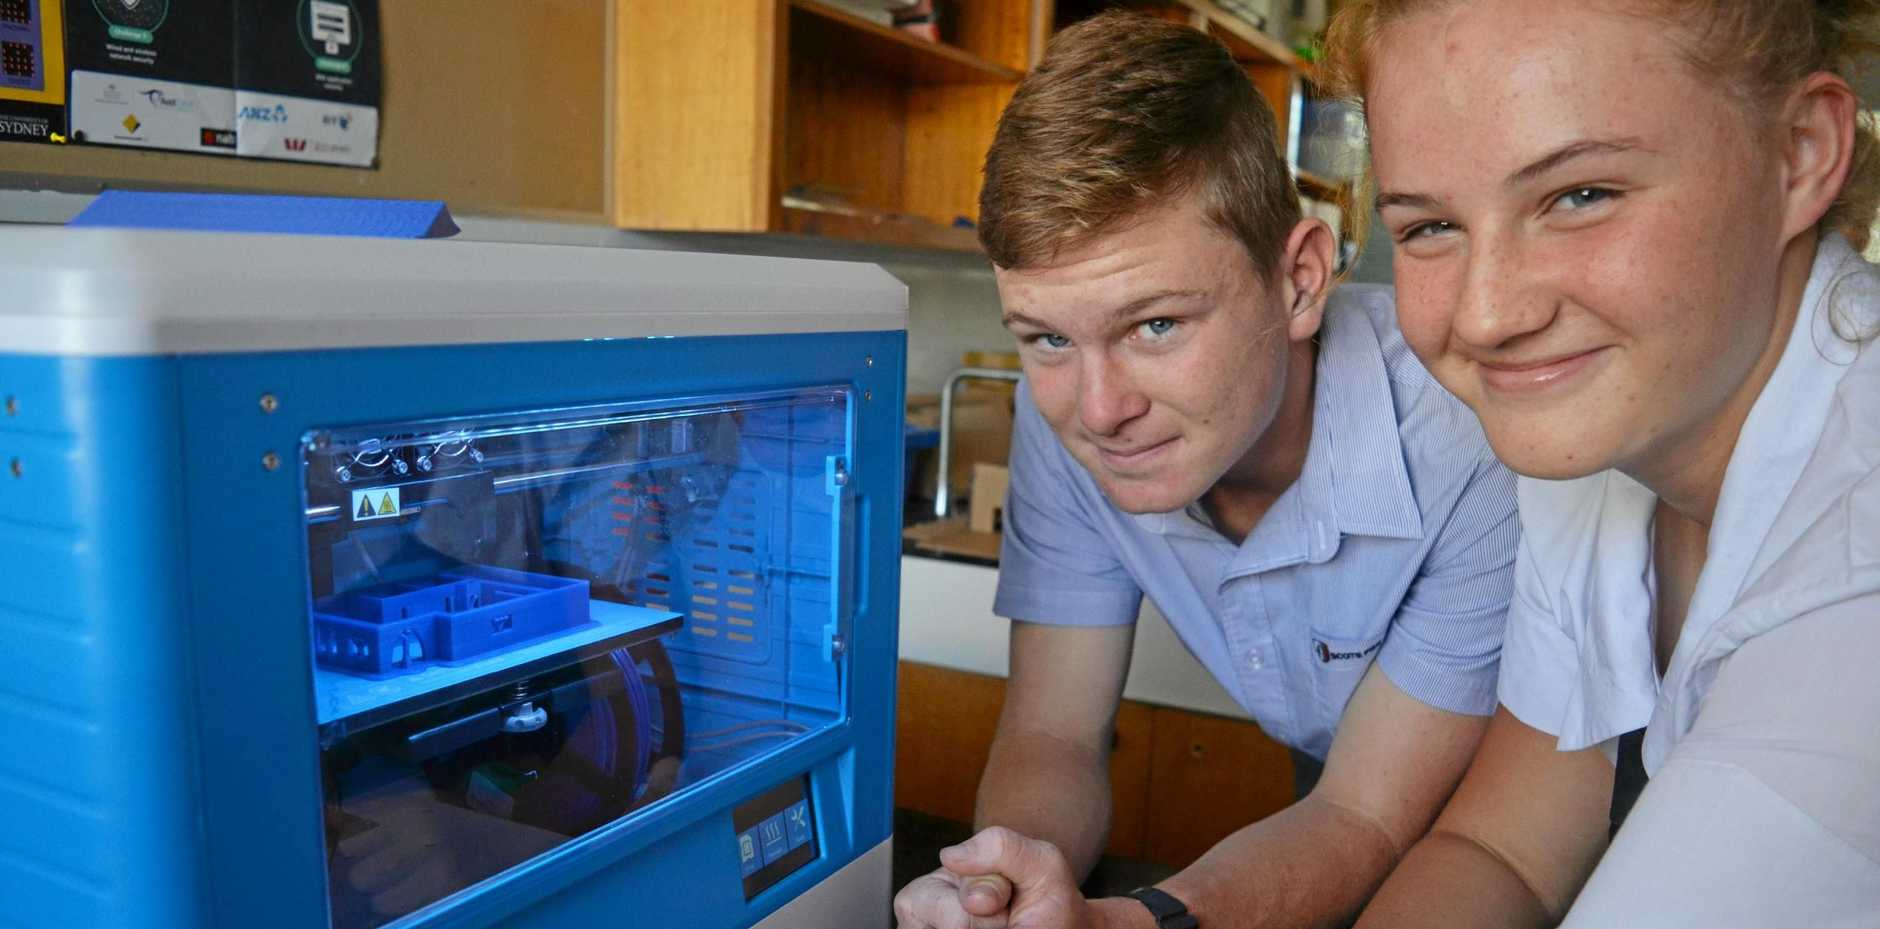 TEACHING TECH: Scots PGC students Alex Elsing and Chloe Paganin are building model homes with a 3D printer in their STEM class.